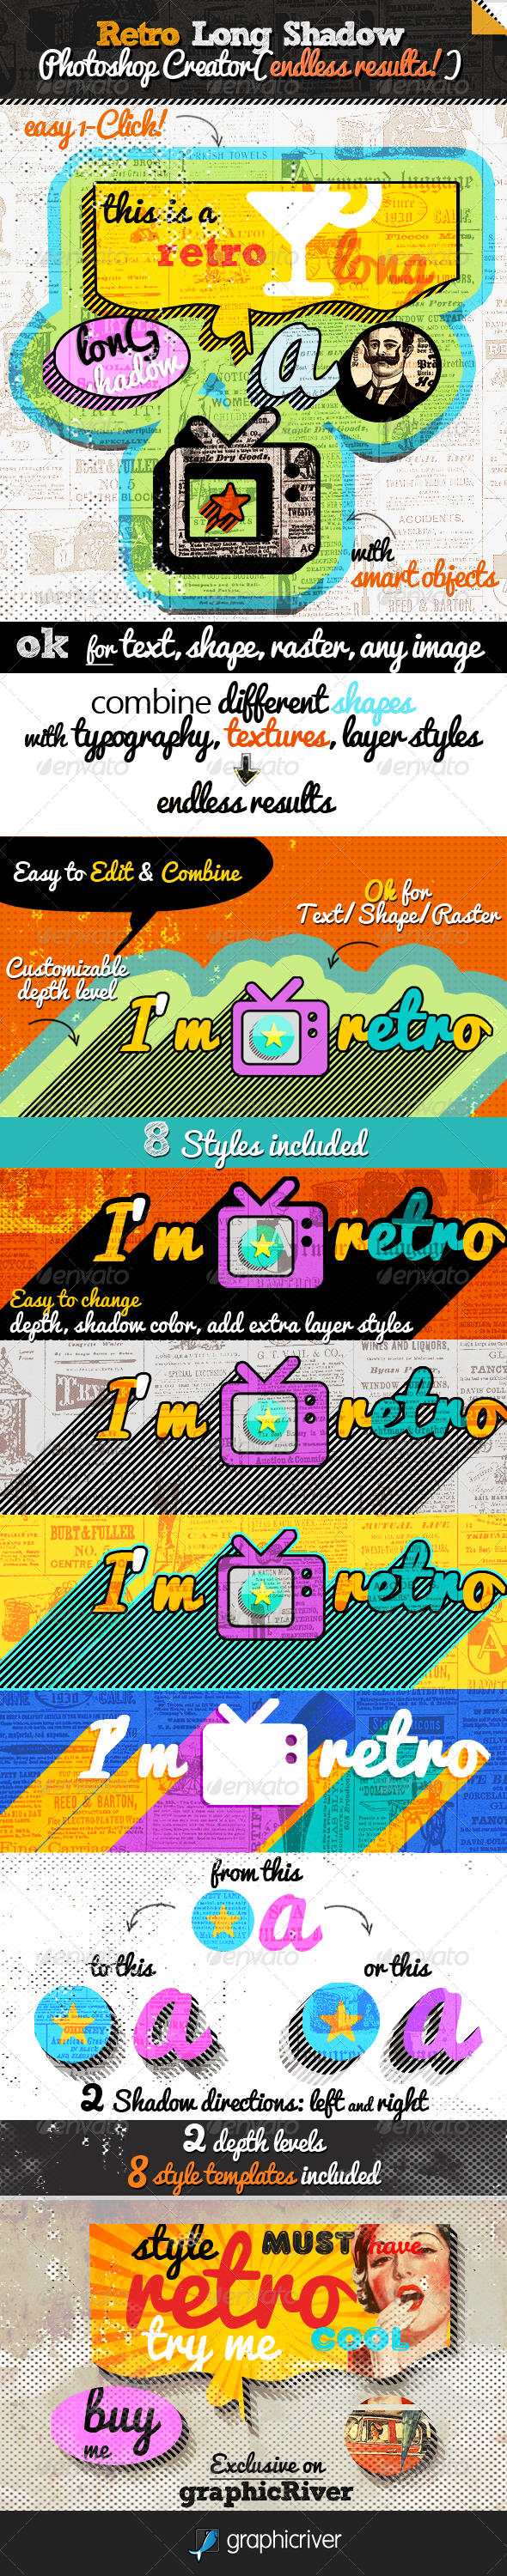 Retro Long Shadow Photoshop Creator - Text Effects Styles